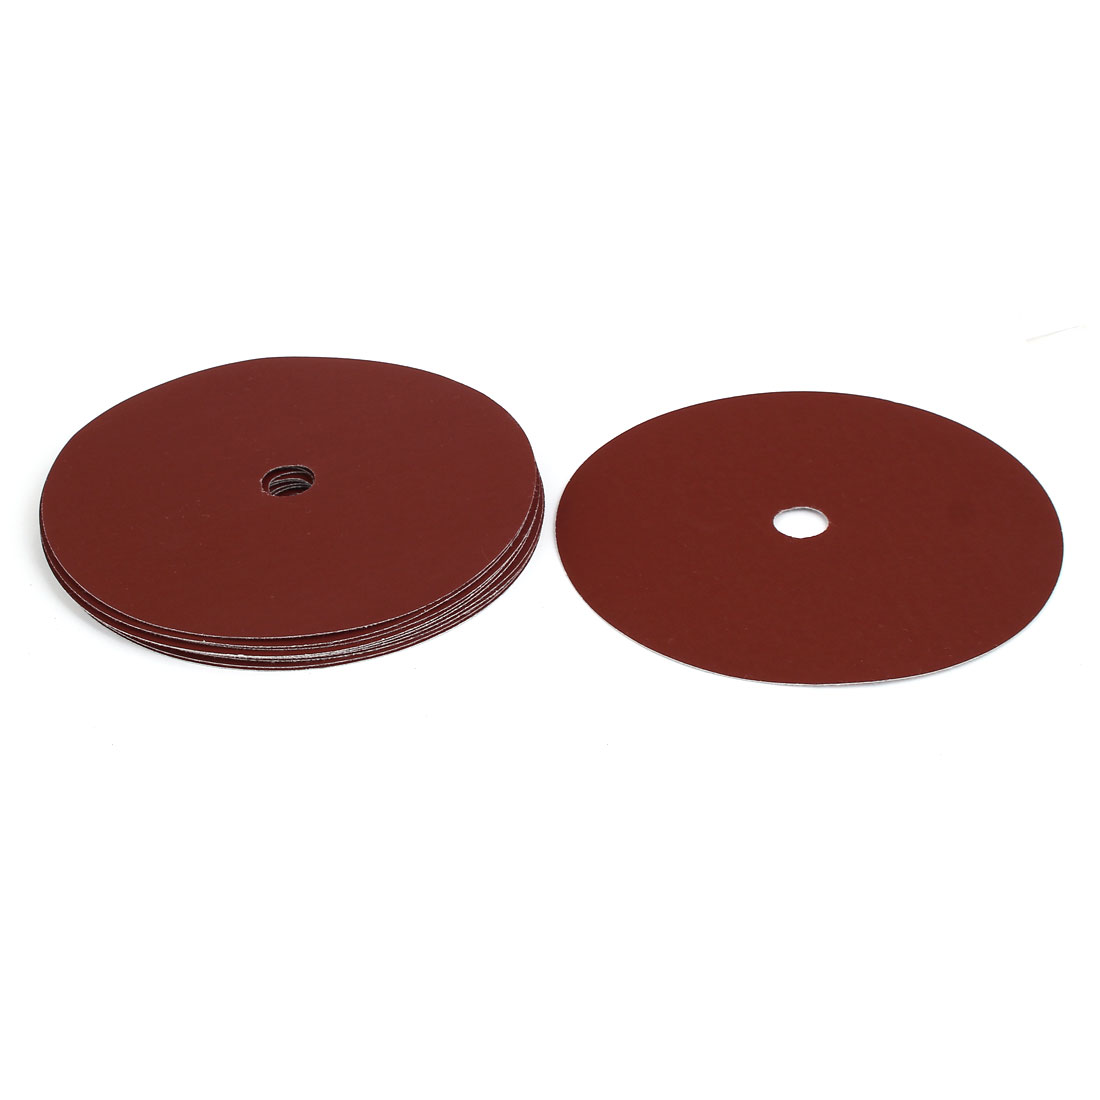 "1000 Grit 1 Hole 7"" Diameter Sandpaper Hook Loop Sanding Disc 10 Pcs"